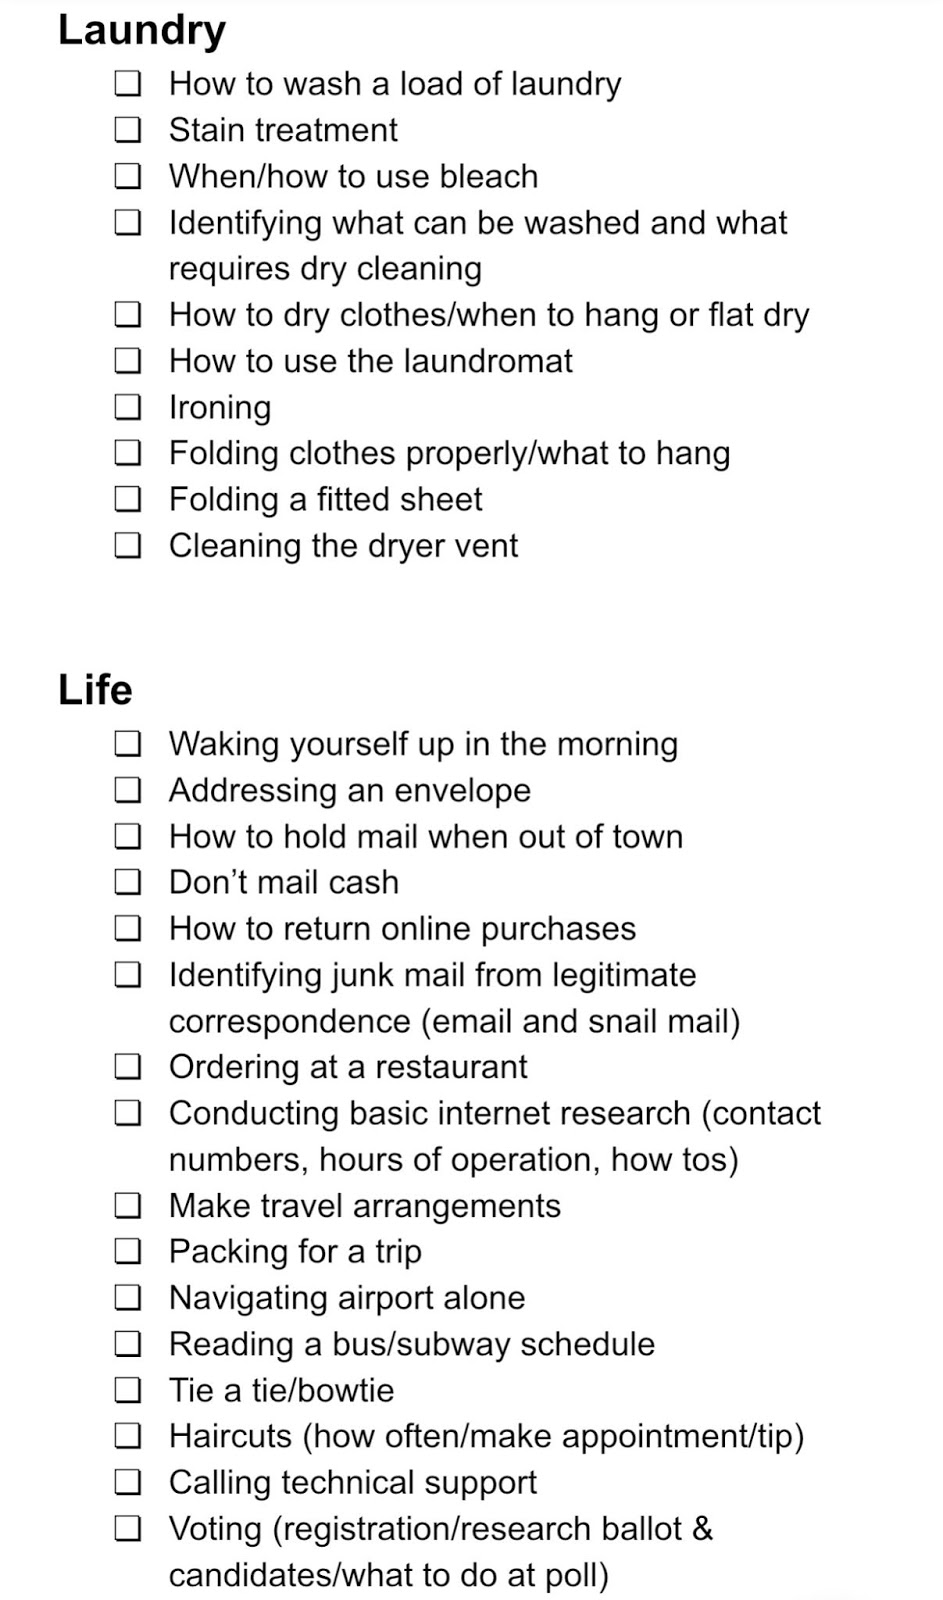 life skills topics for young adults